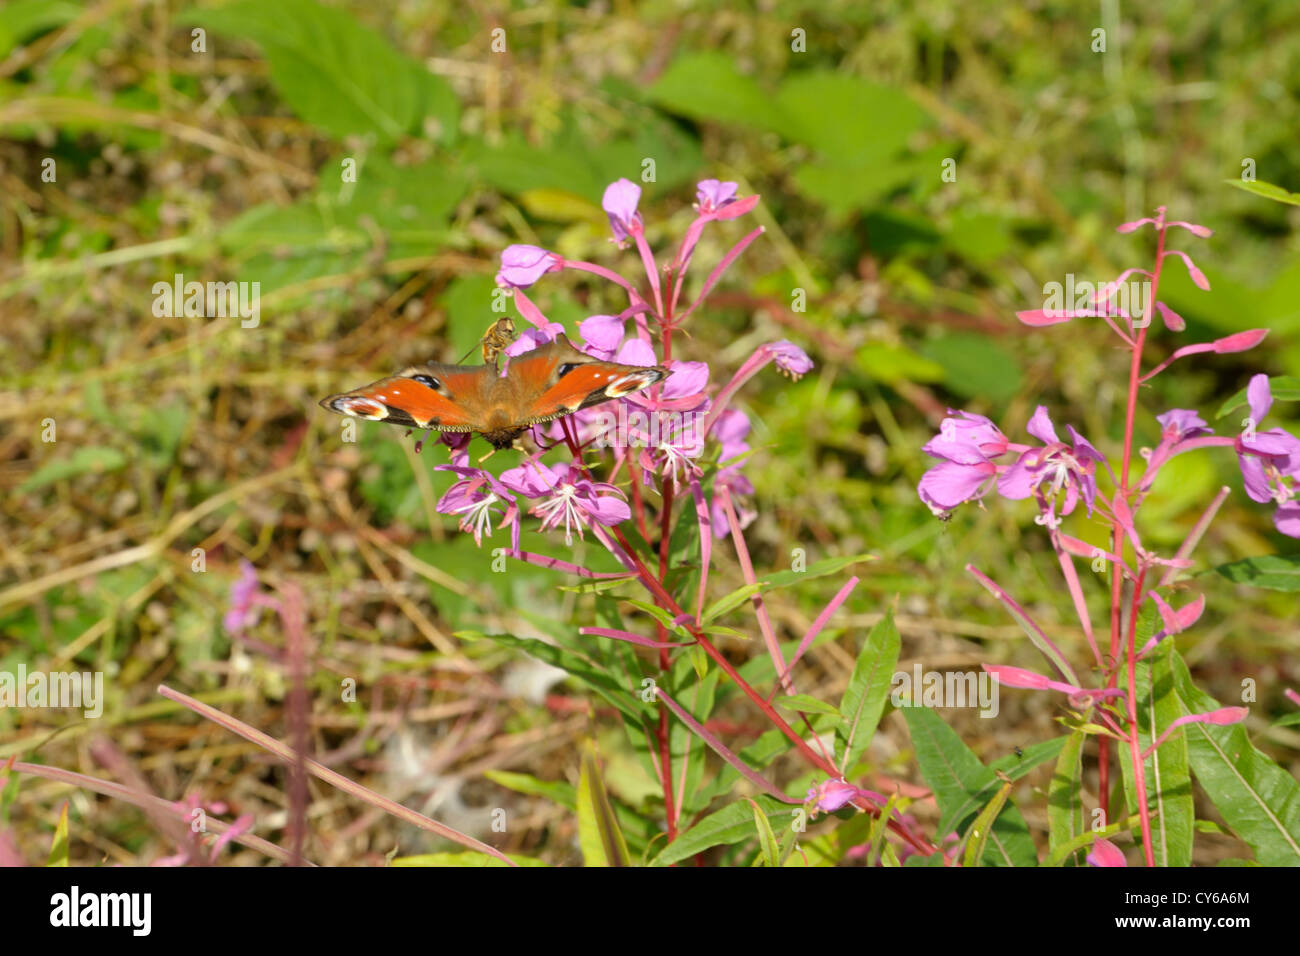 European Peacock Butterfly, Inachis io on Rosebay Willowherb - Stock Image